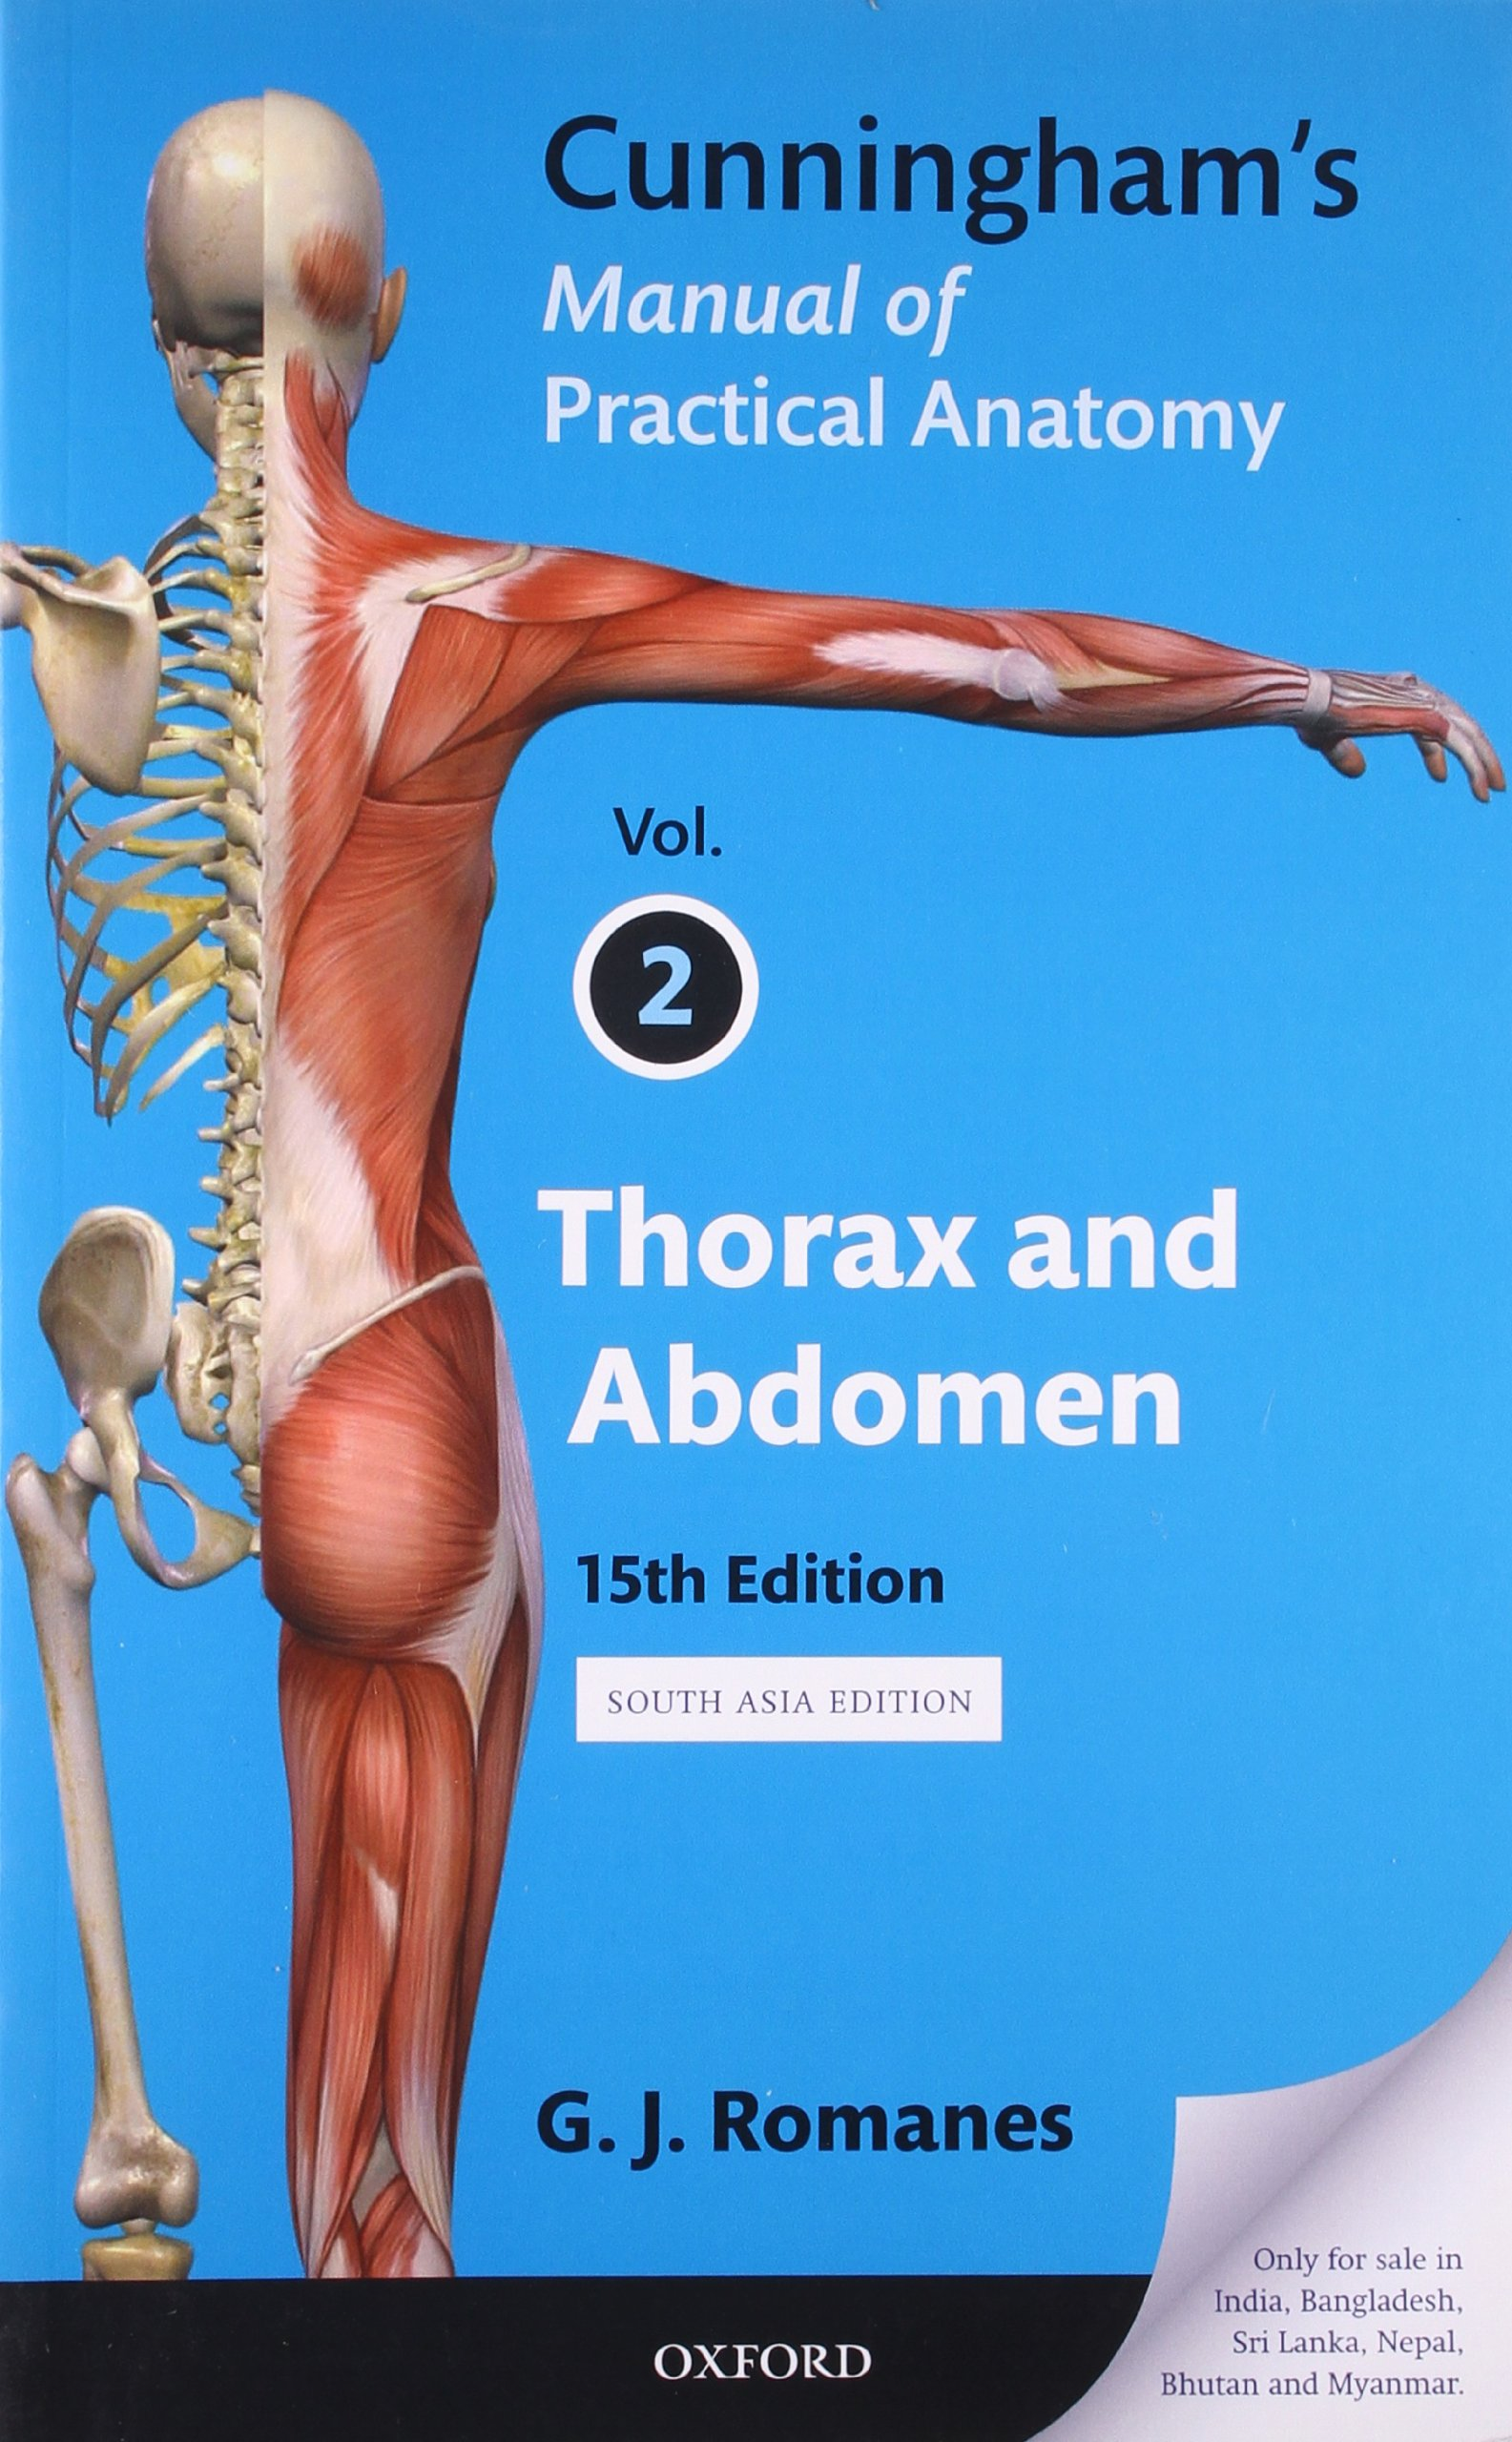 Books Cunninghams Manual Of Practical Anatomy Vol 2 Thorax